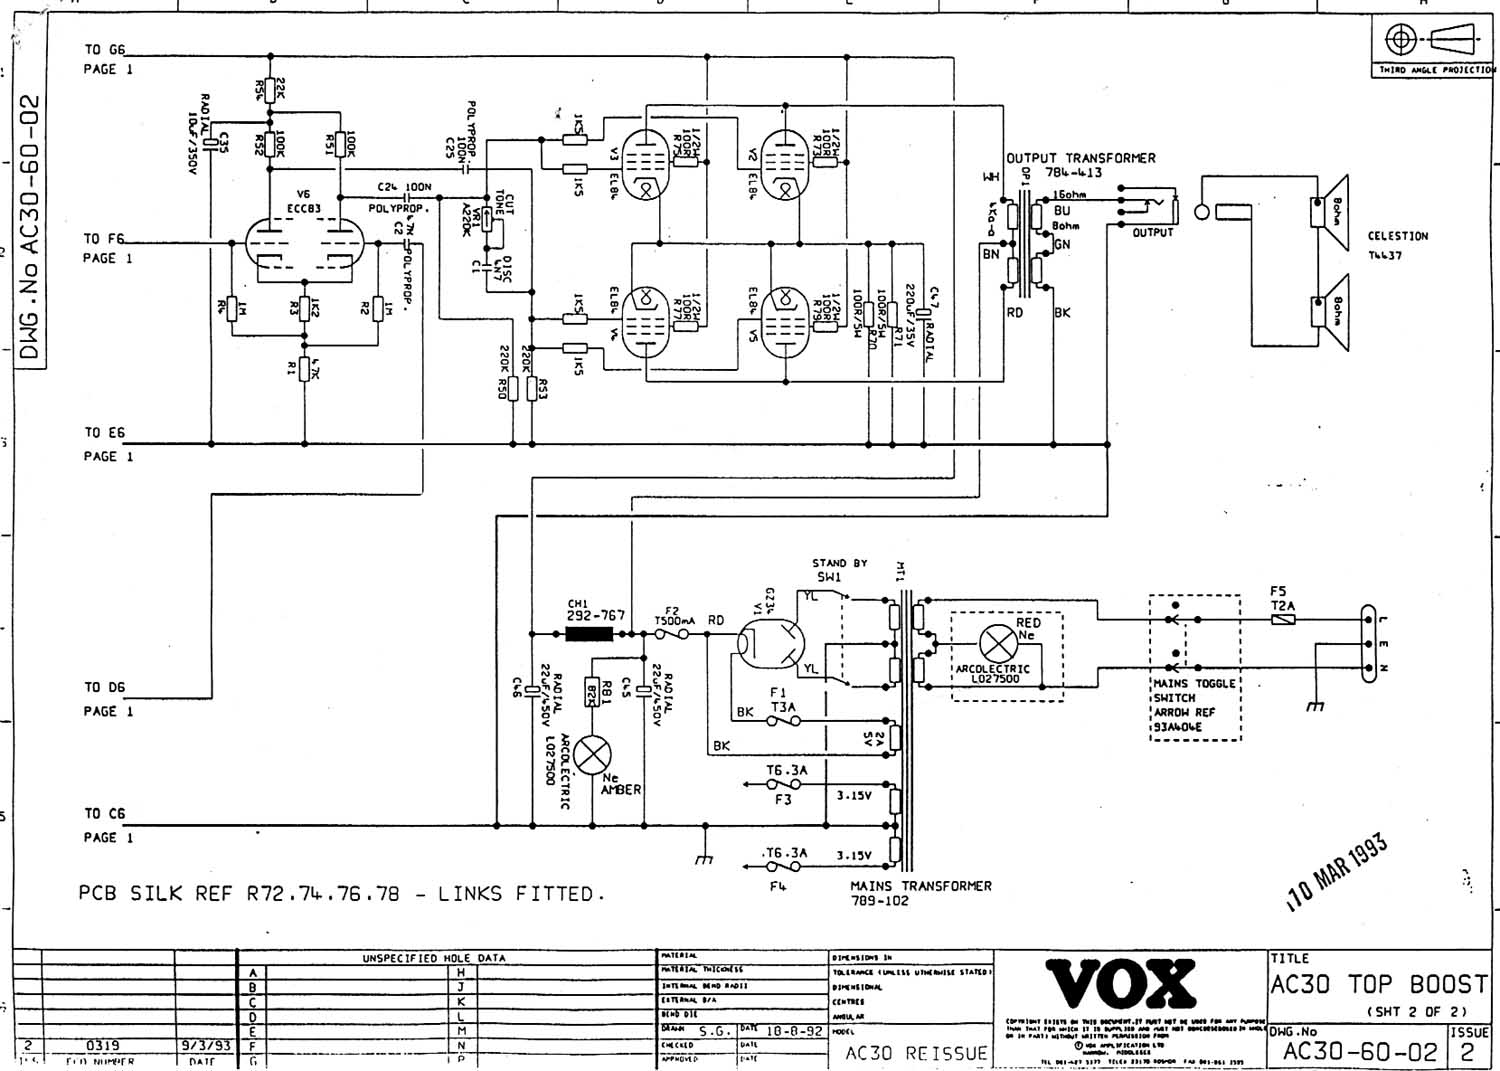 Vox Vintage Circuit Diagrams 12 Volt Power Supply Likewise Audio Lifier In Ac30 Amp Section Of The Top Boost Re Issue 1993 Onward Download Diagram